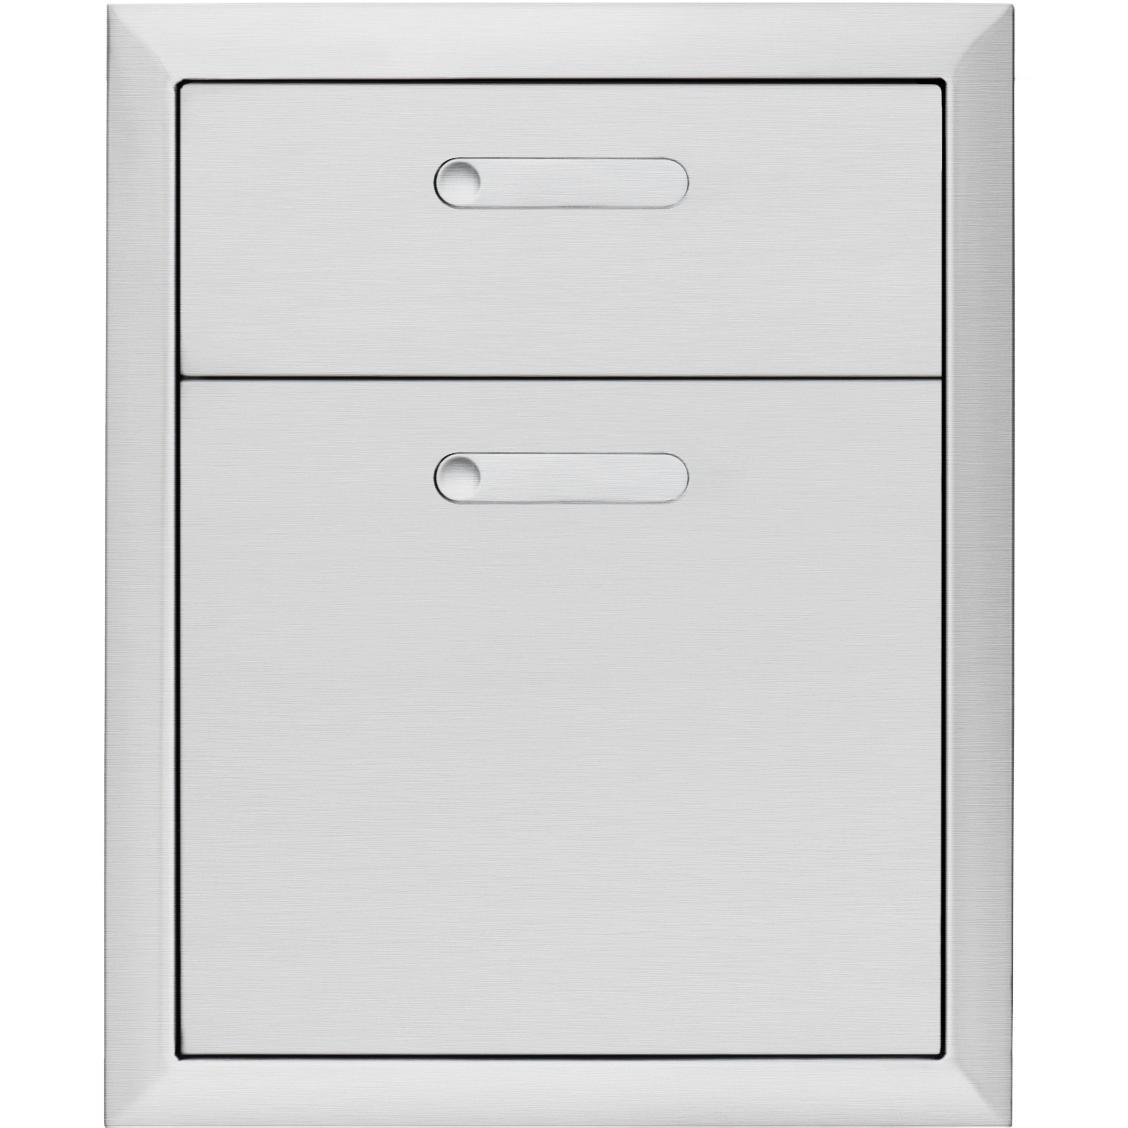 "Lynx 16"" Double Access Drawers"